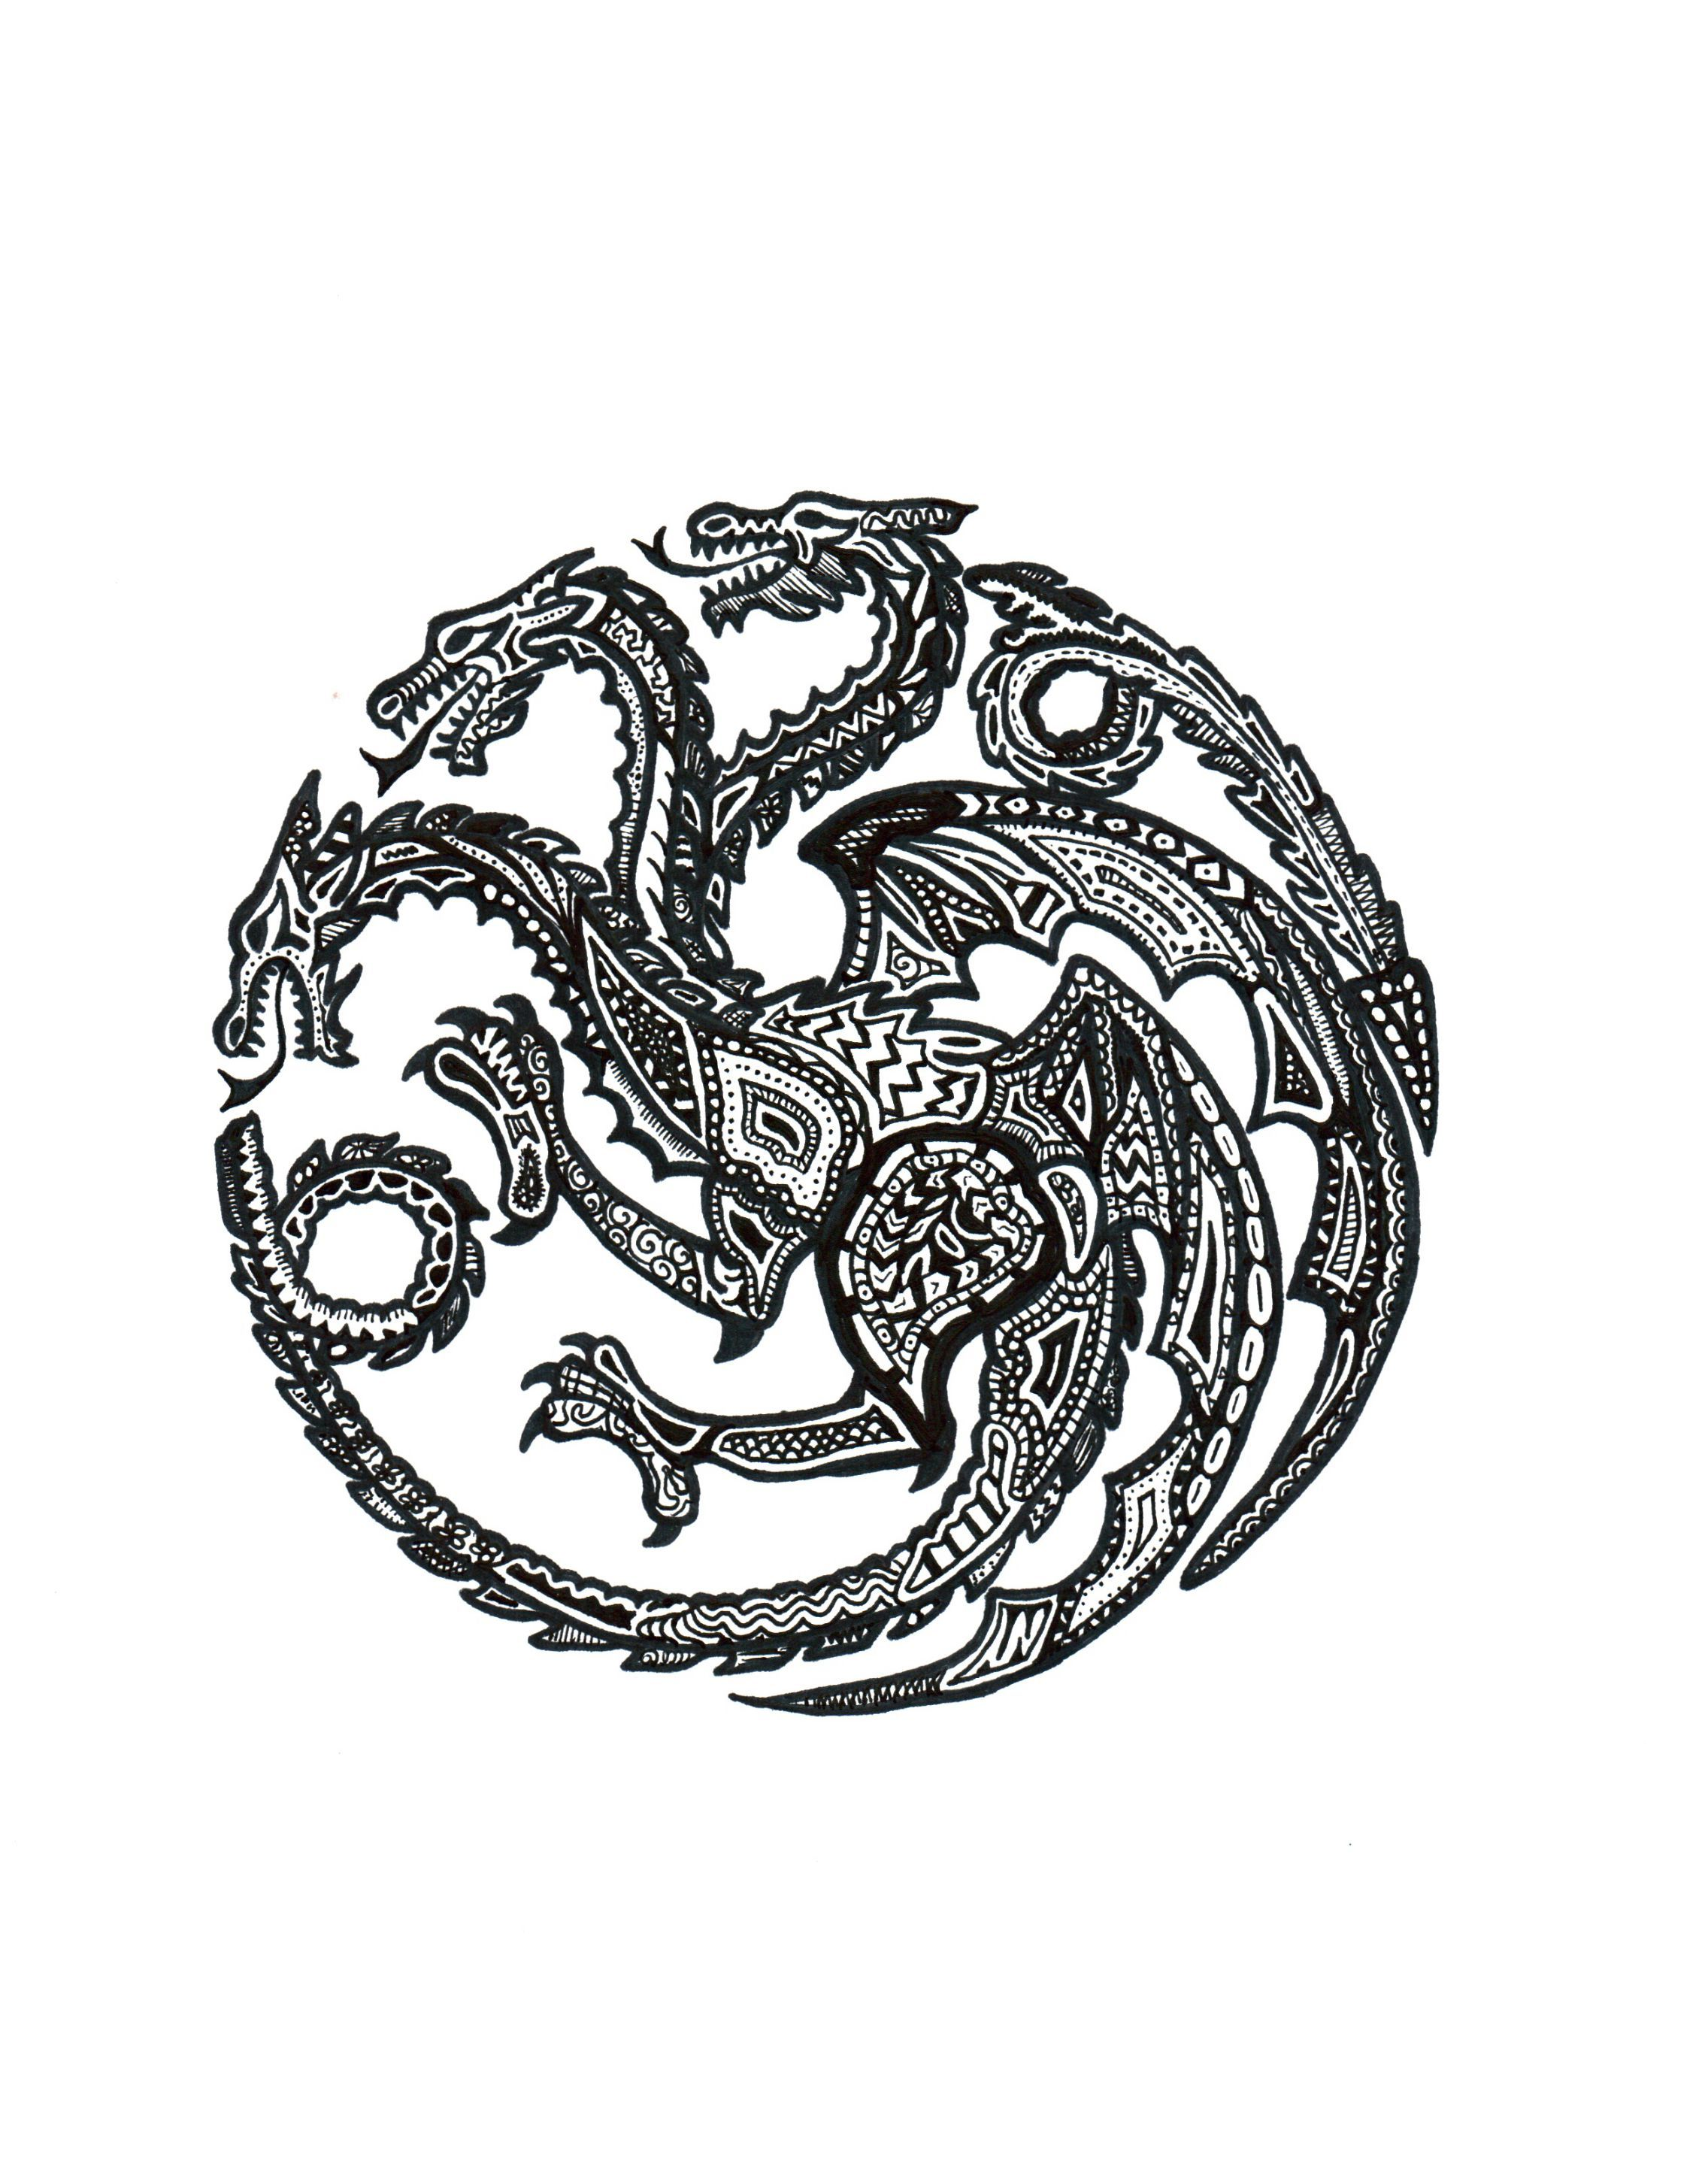 game of thrones illustration inspiration pinterest gaming house and tattoo. Black Bedroom Furniture Sets. Home Design Ideas